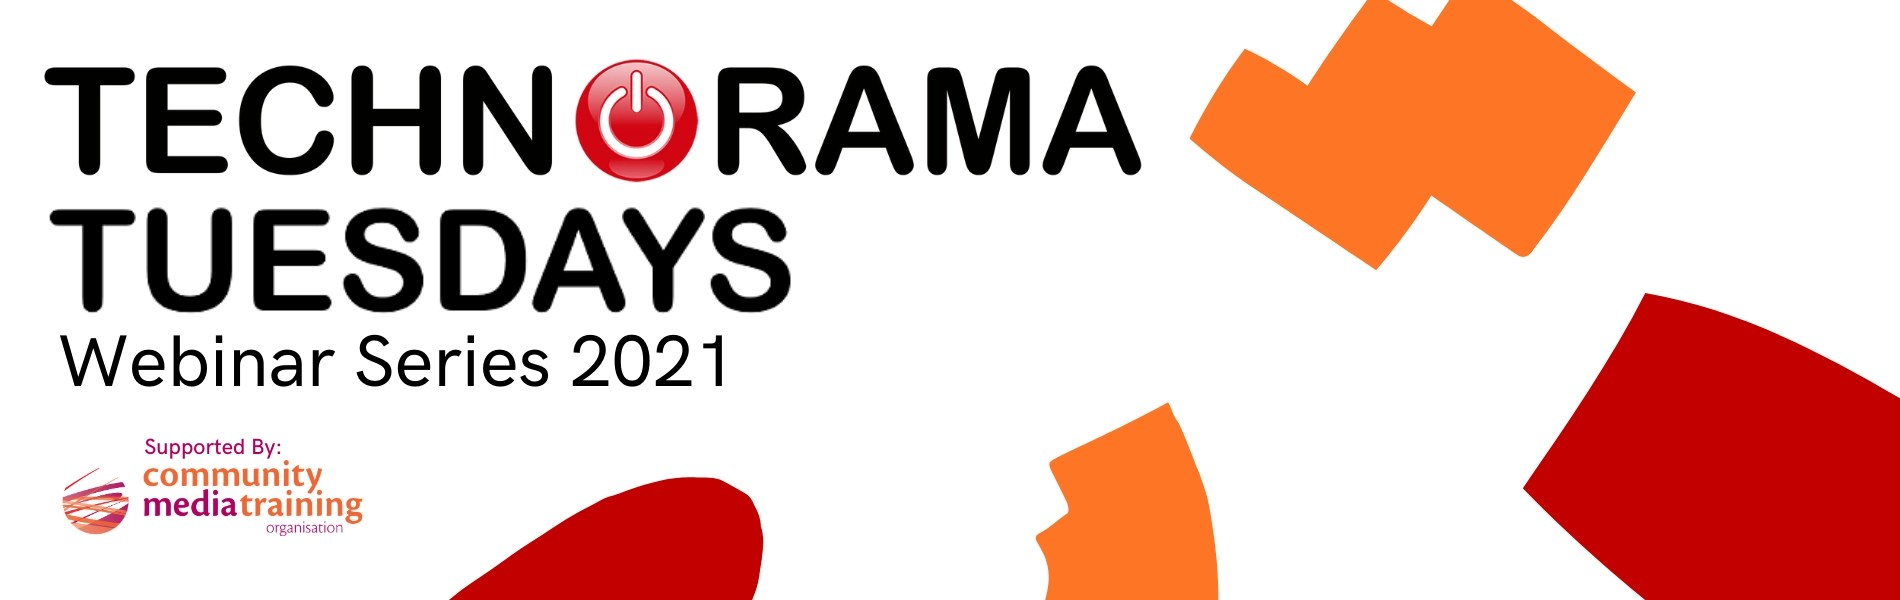 Copy of Technorama Tuesdays 2021 - Facebook Cover Template (1)